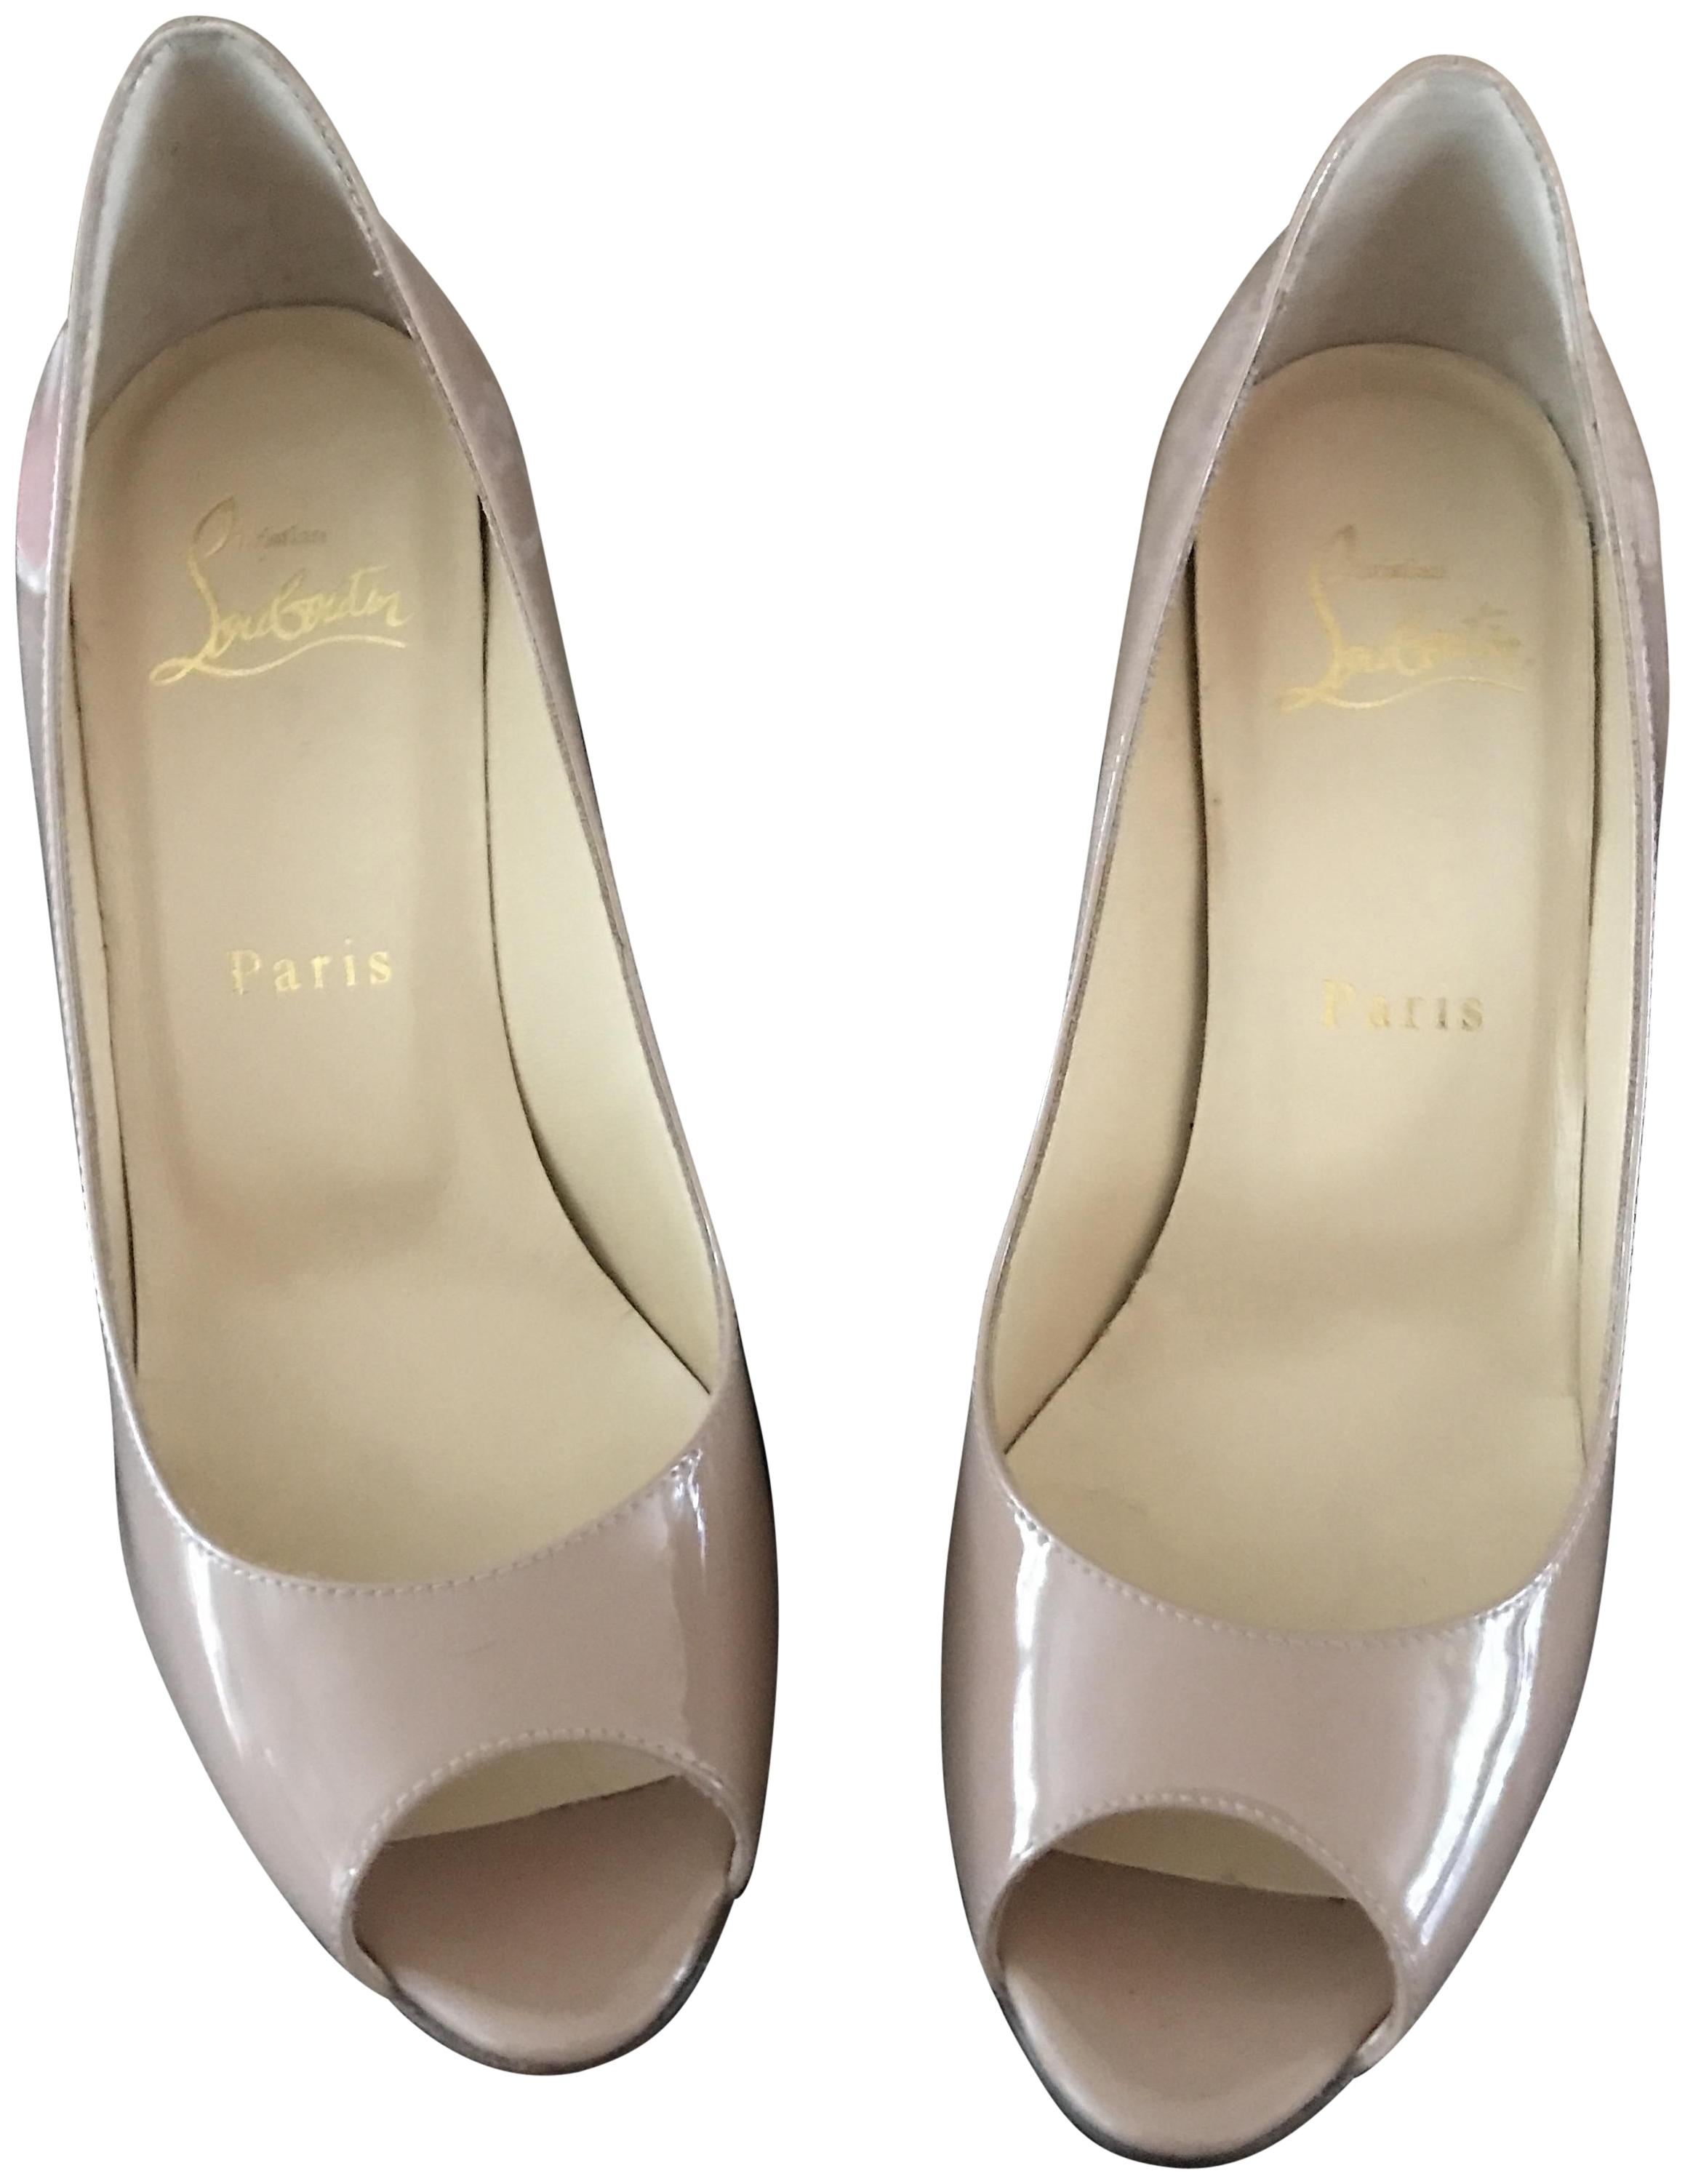 Christian Louboutin Nude Yootish Pumps Size EU 36.5 (Approx. US 6.5) Regular (M, B)